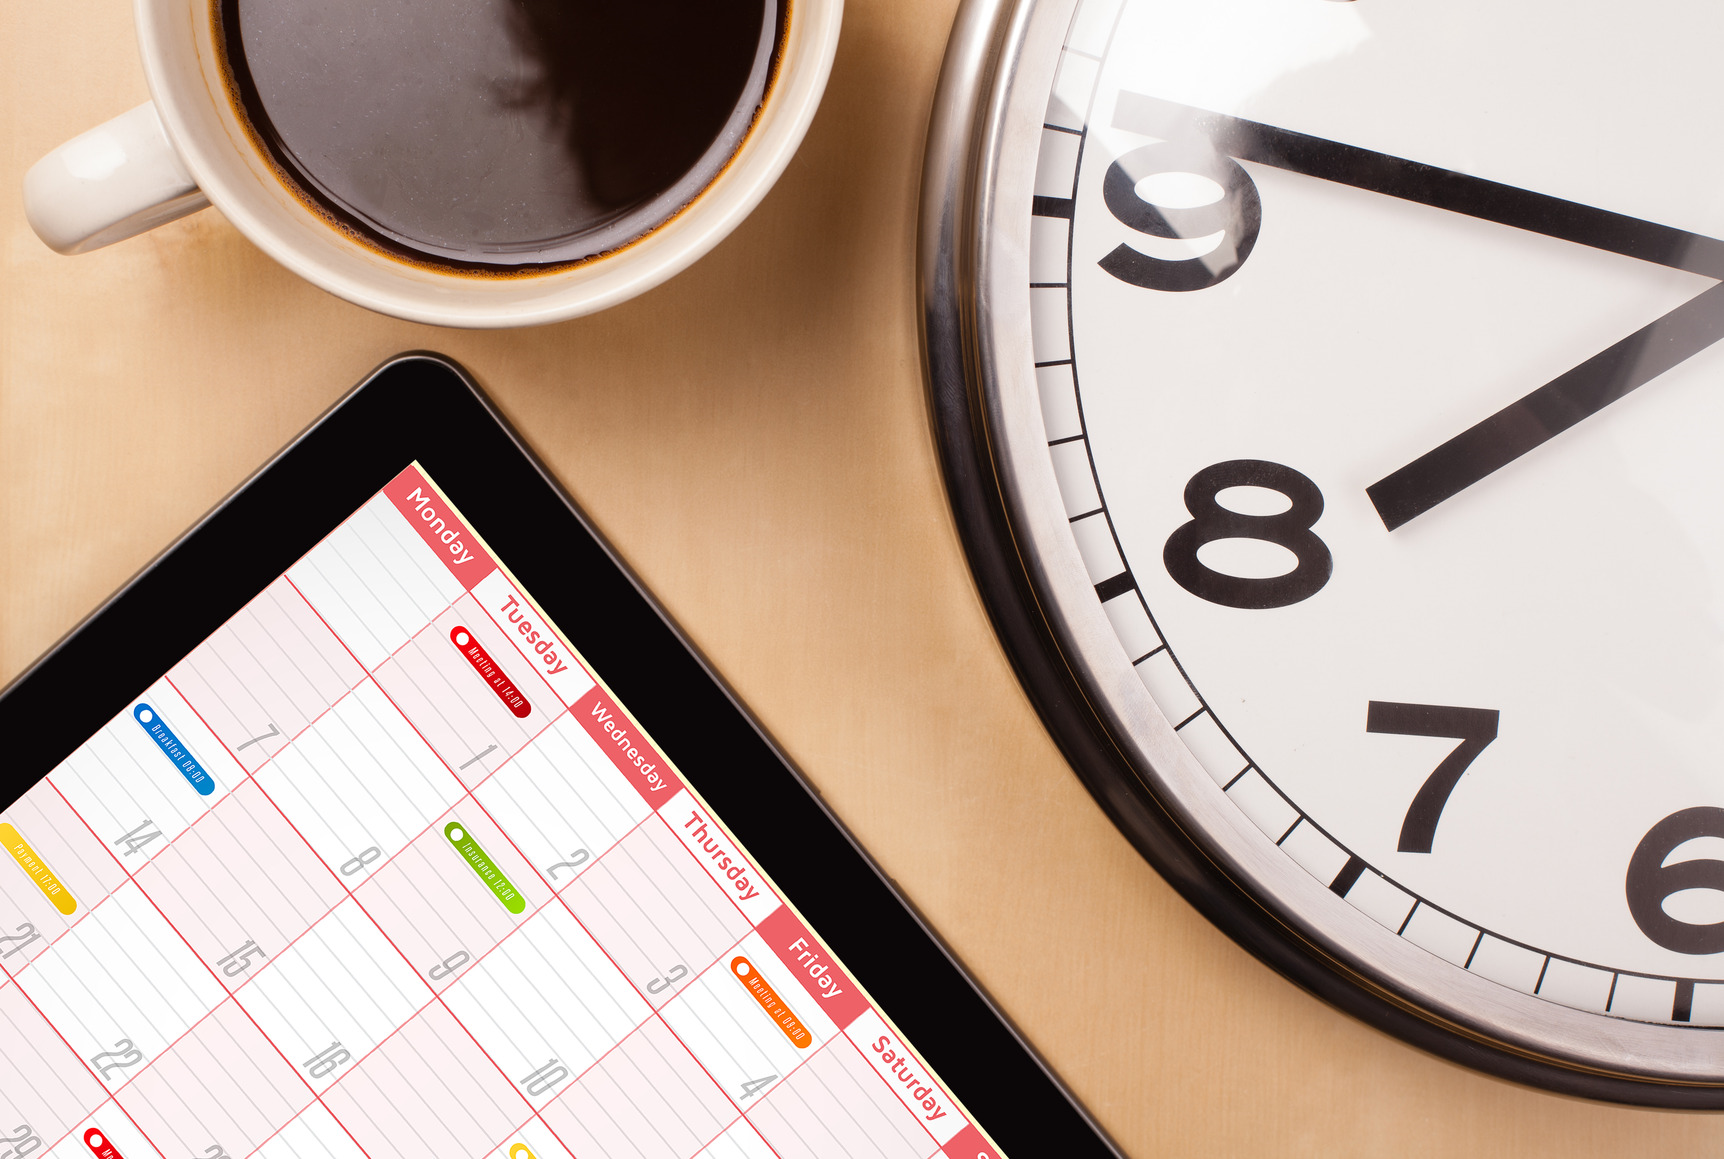 Where does all the time go? - Time Management top tips